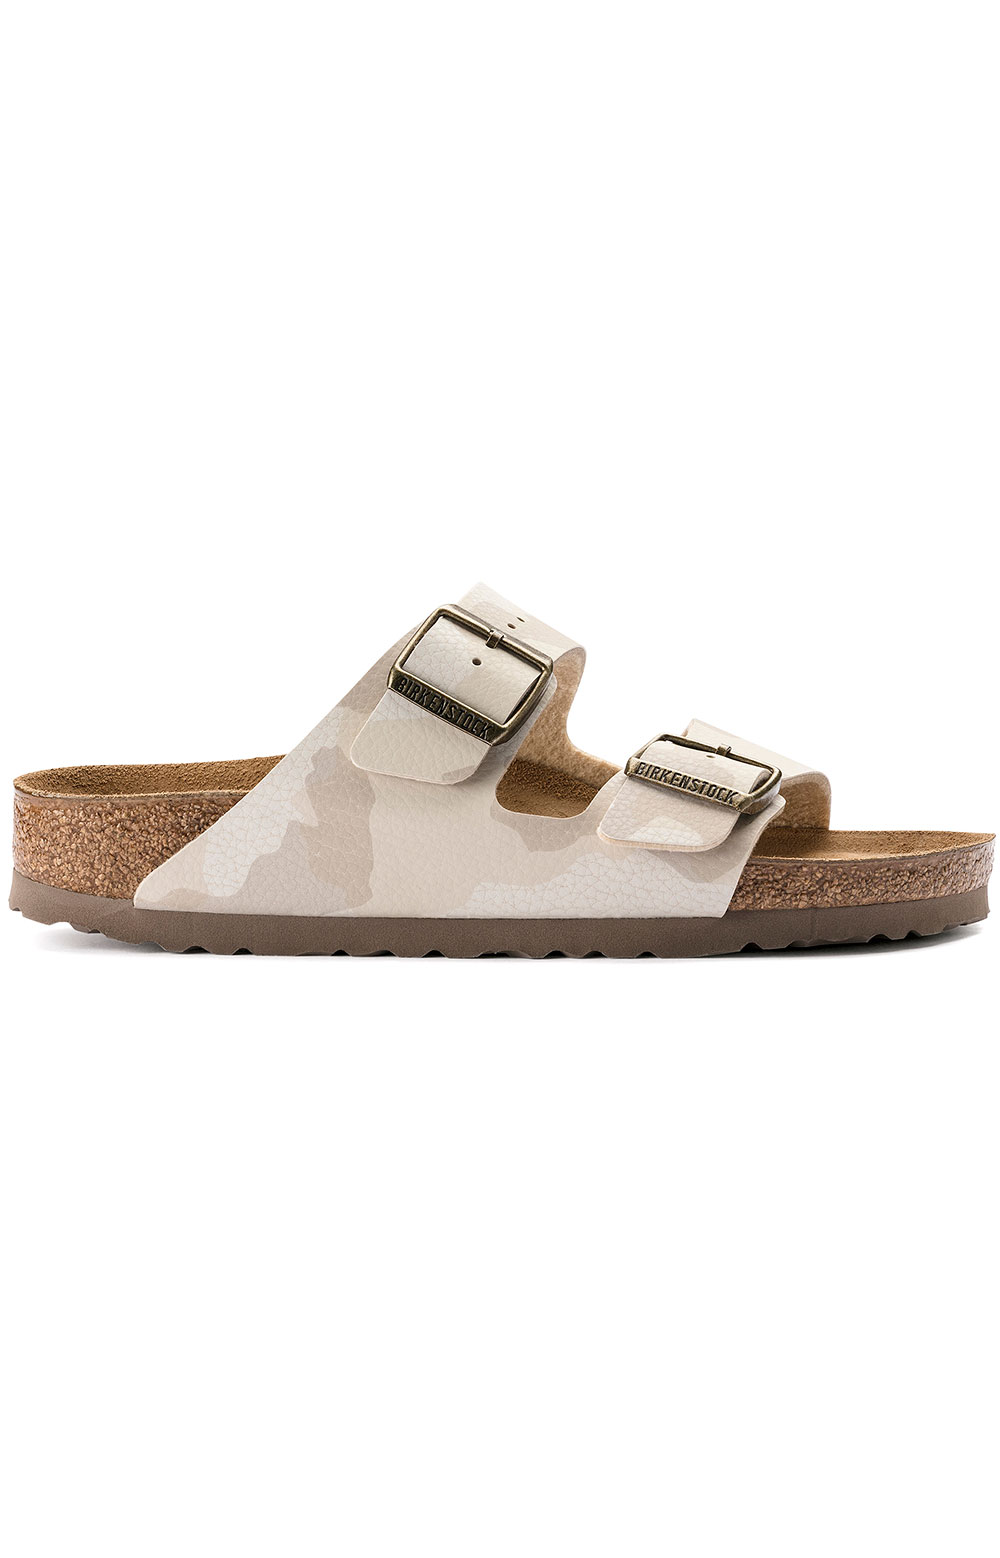 (1016791) Arizona Sandals - Desert Soil Camo Sand 4